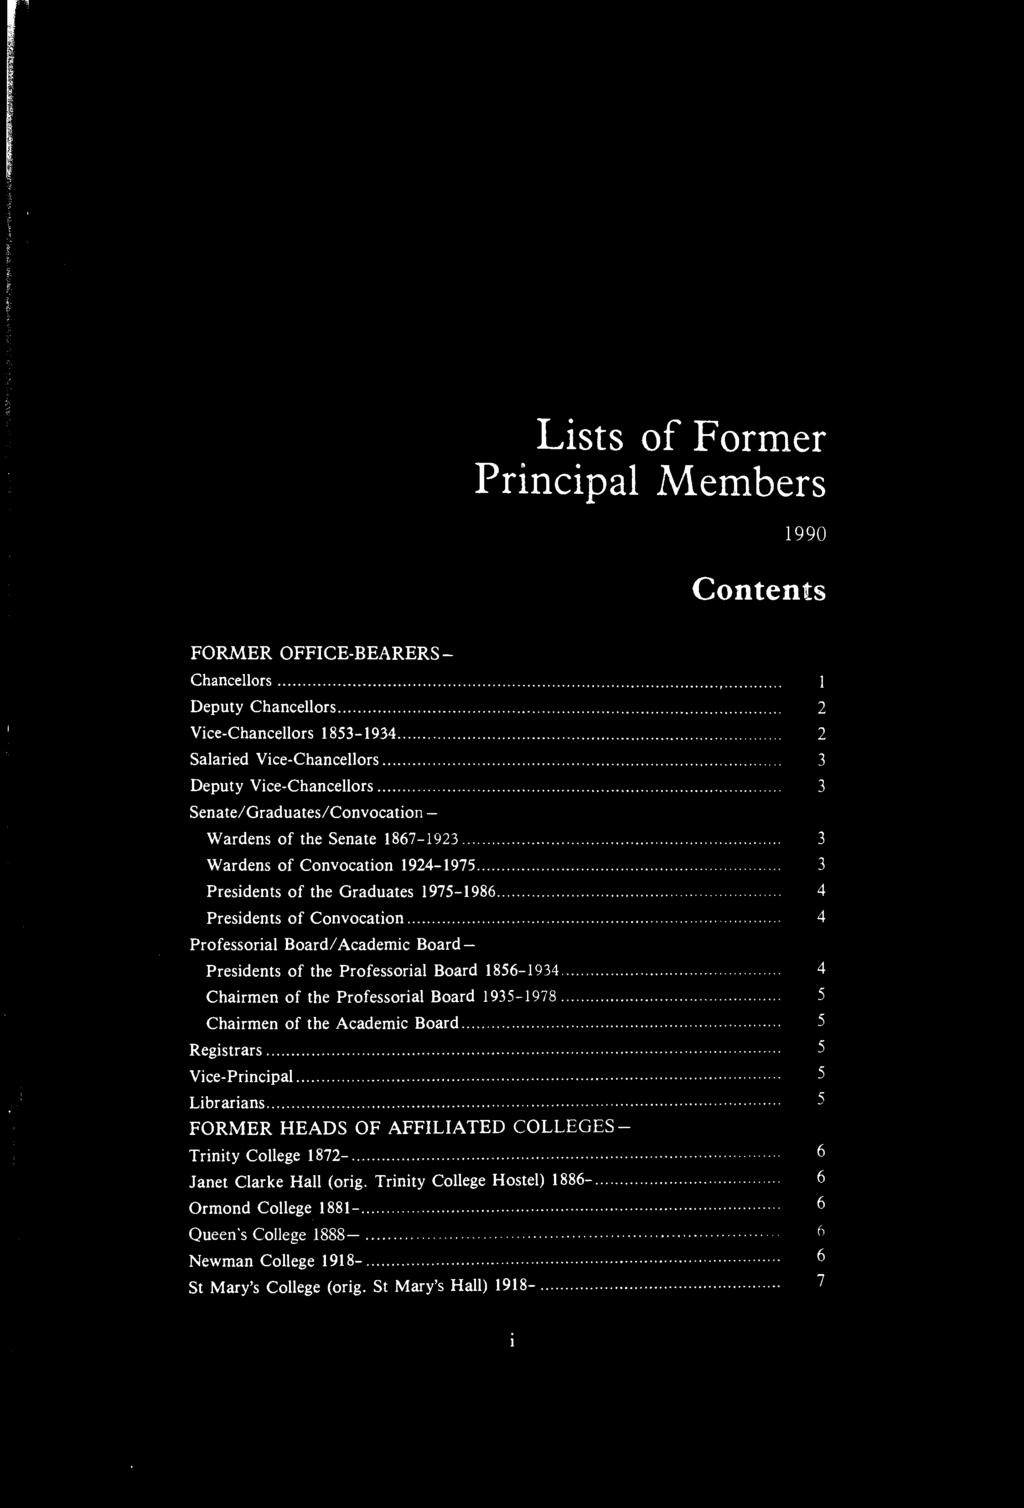 Lists of Former Principal Members 1990 Contents FORMER OFFICE-BEARERS Chancellors 1 Deputy Chancellors 2 Vice-Chancellors 1853-1934 2 Salaried Vice-Chancellors 3 Deputy Vice-Chancellors 3